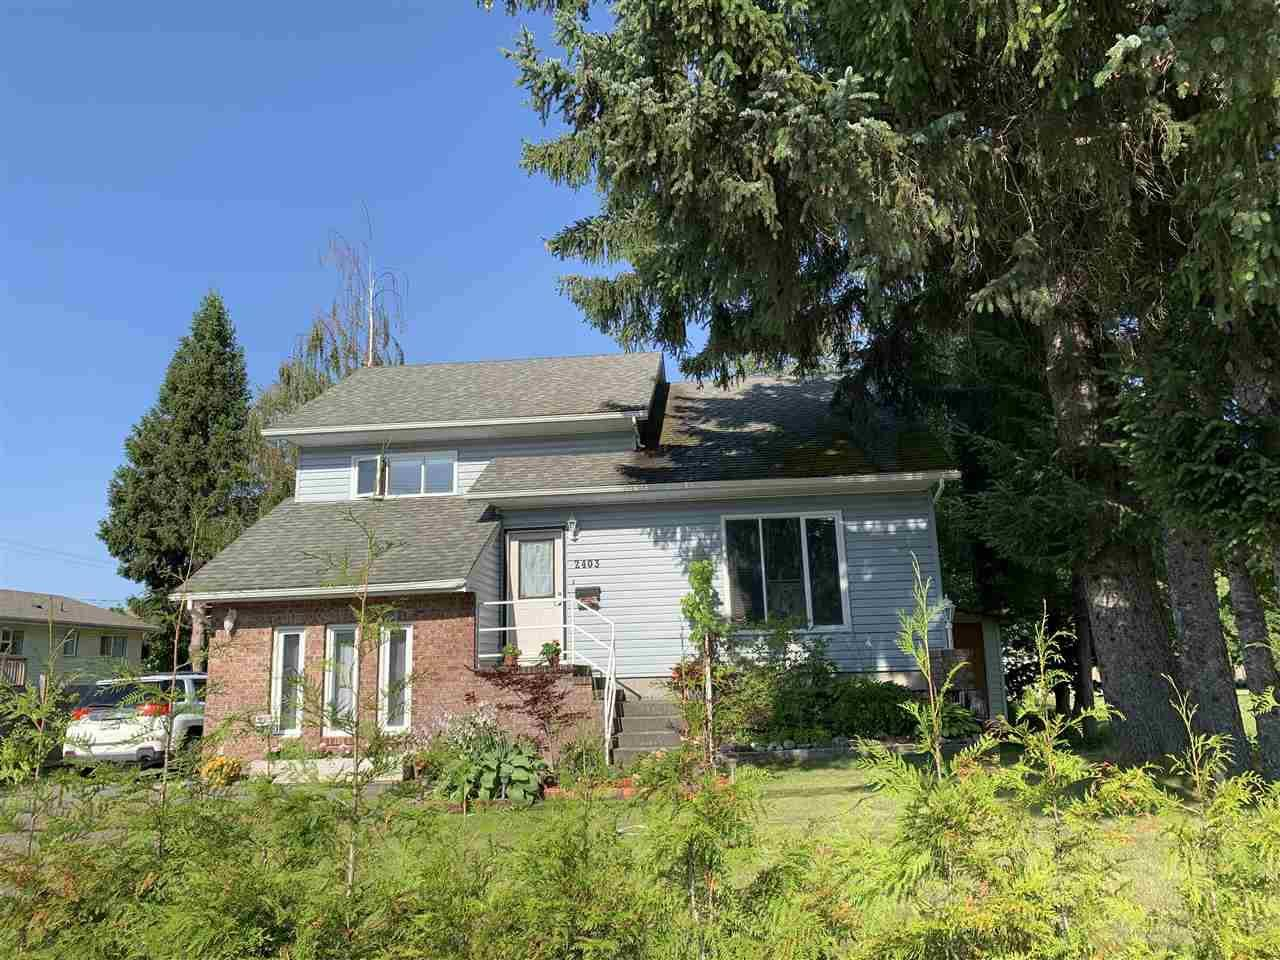 House for sale at 2403 Kalum St Terrace British Columbia - MLS: R2386216